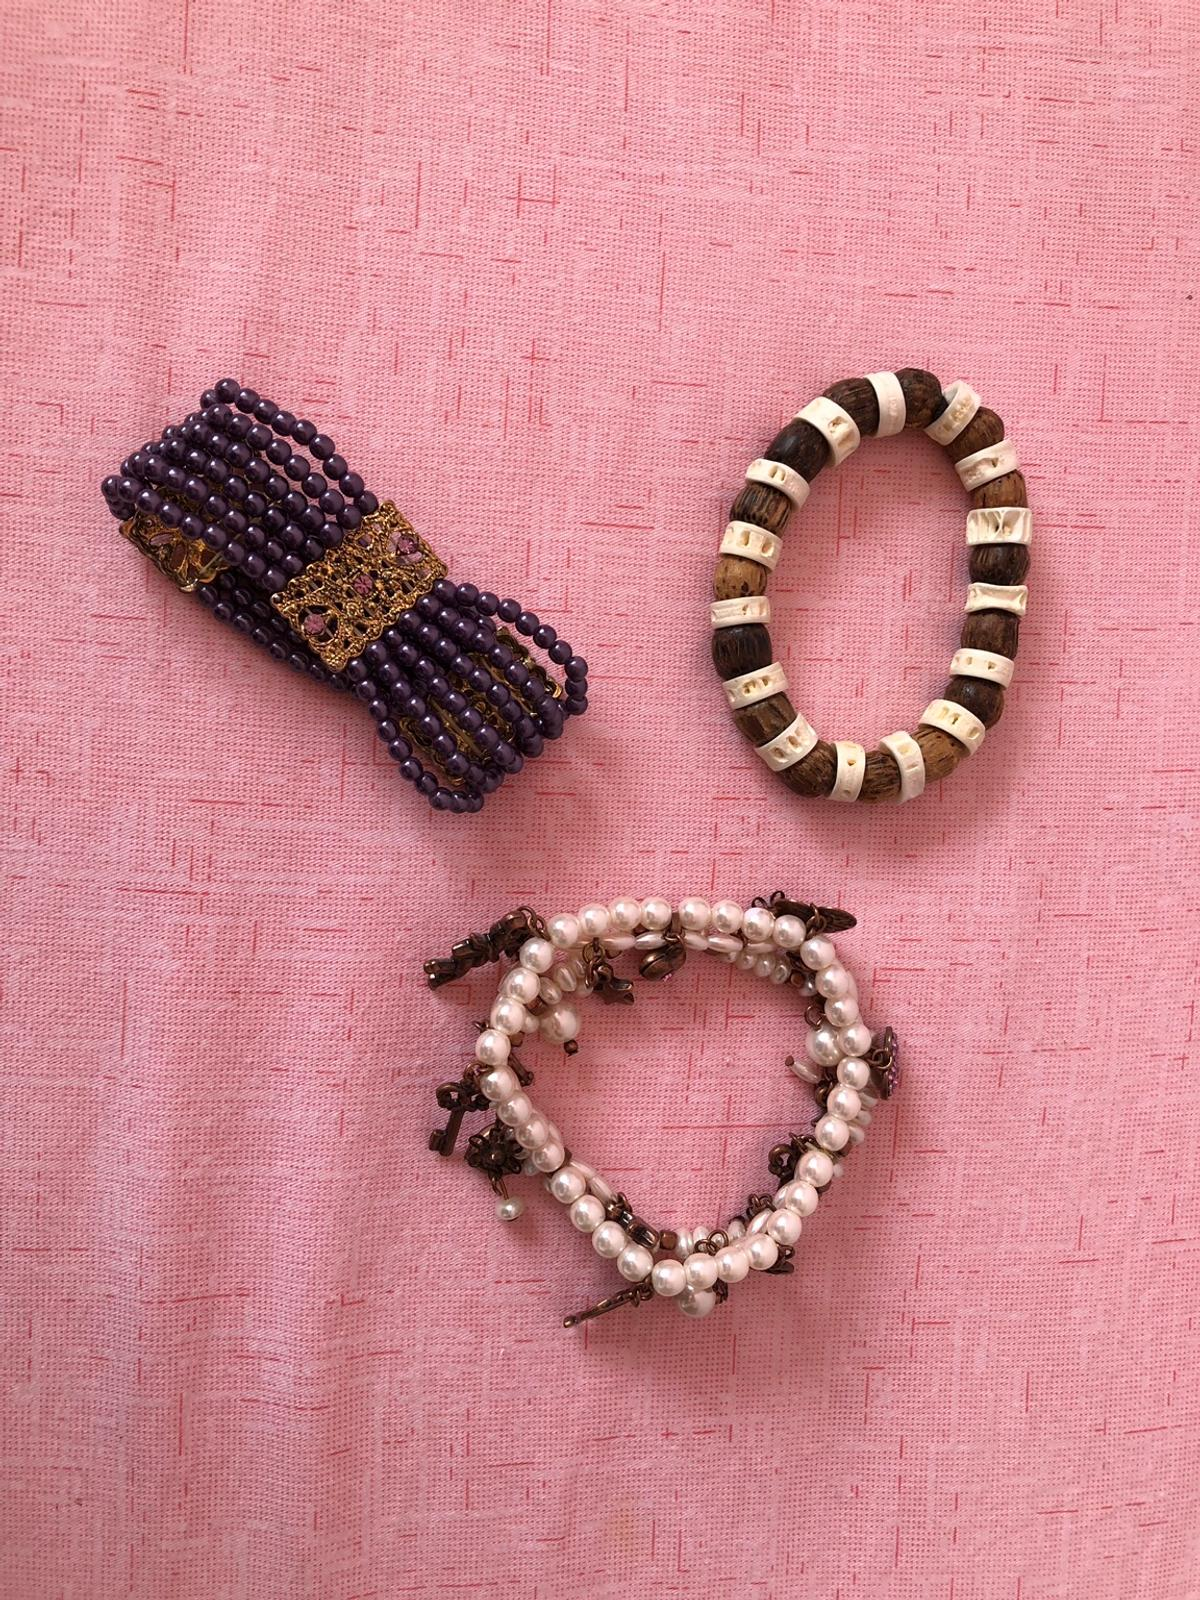 Sumer bracelets, excellent condition. Any 3 for £ 5 or £2 each. Collection HA7